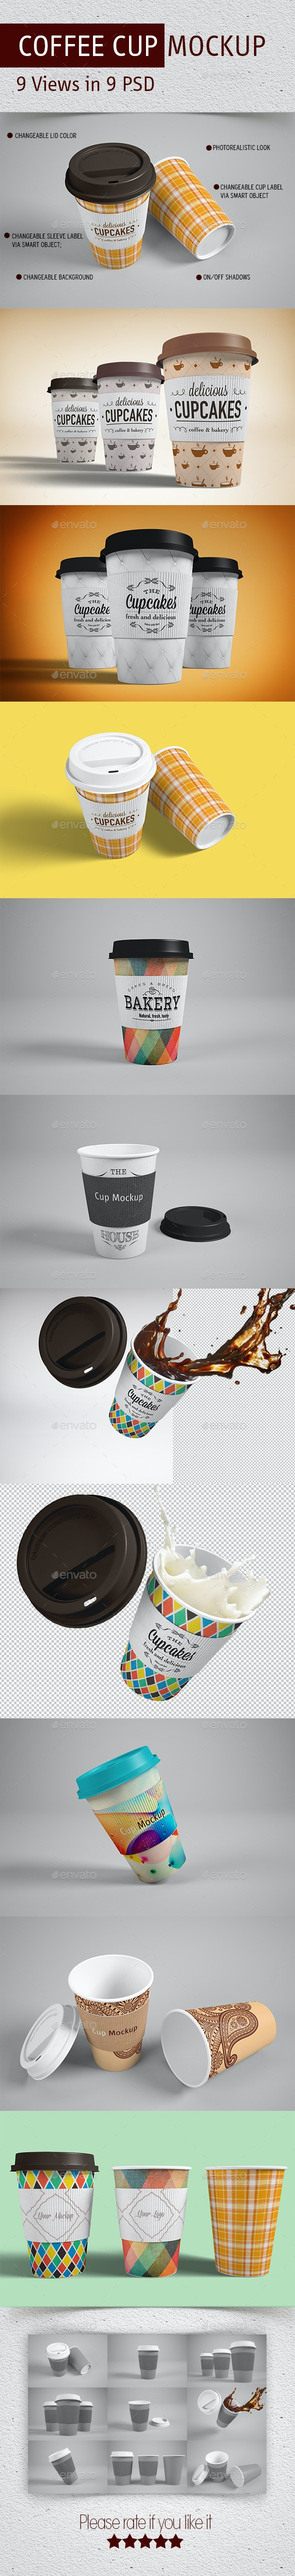 Coffee Cup Mockup - Graphics